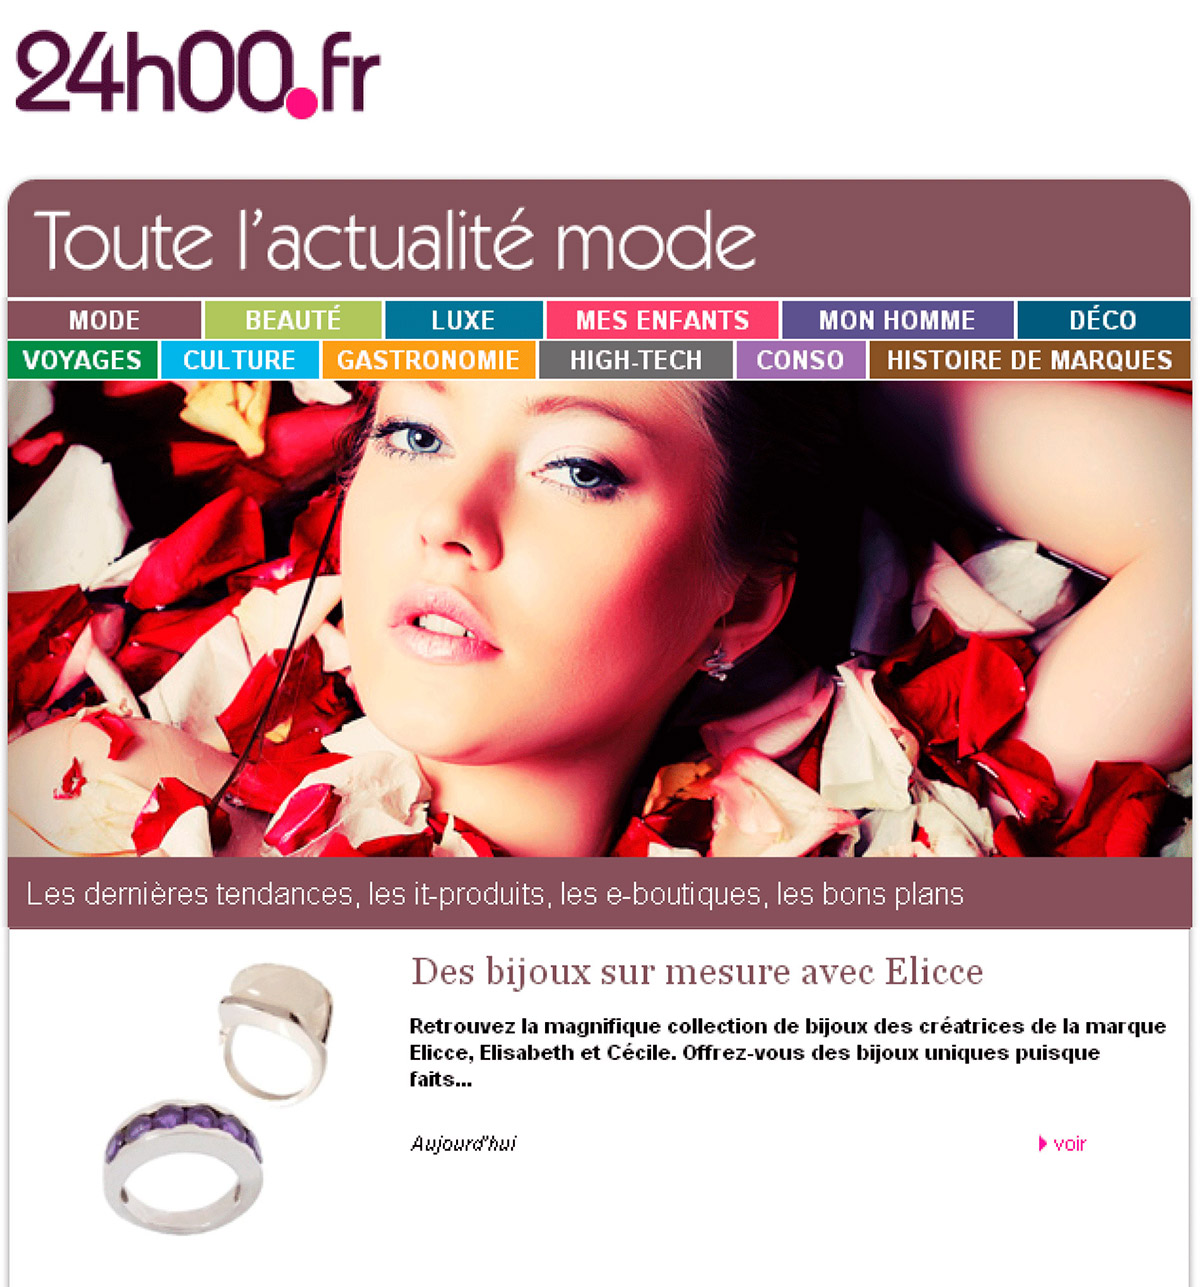 Press Online Jewels Elicce Lip Icce Article Sue Les Bijoux Dans 24h00fr